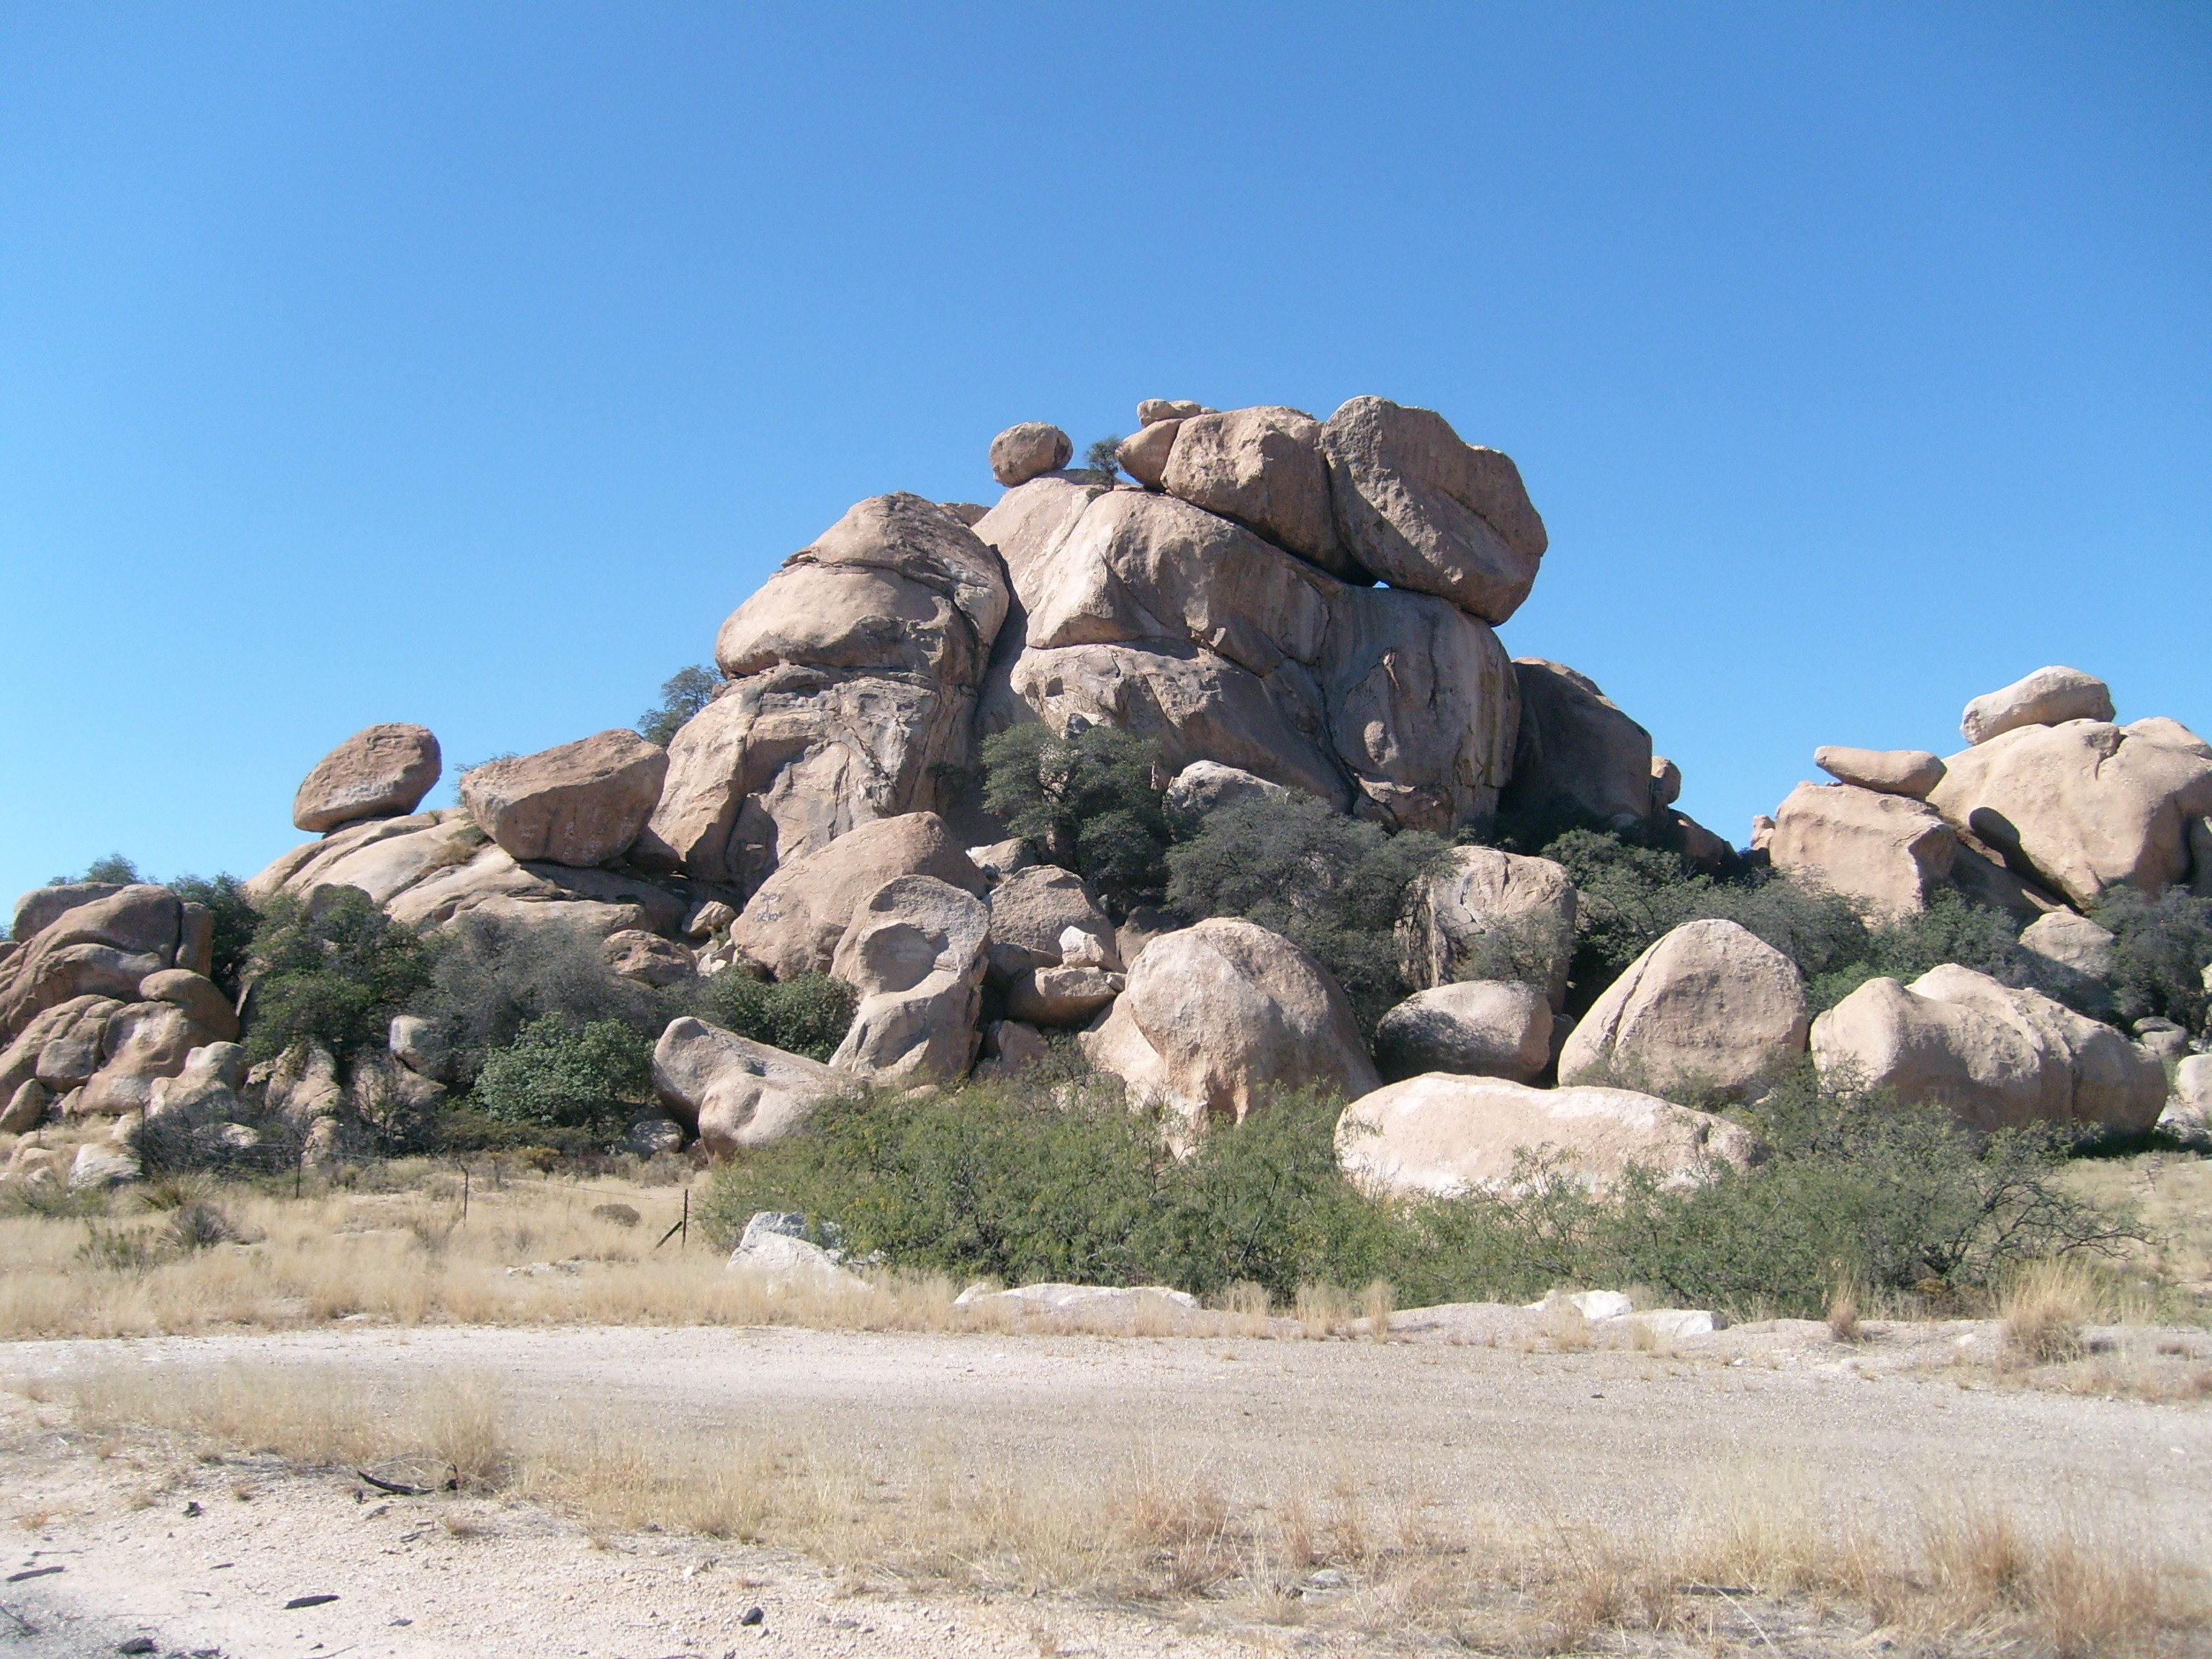 Day 68 – AZ rock formations | Cross Country Bicycling with Carrie